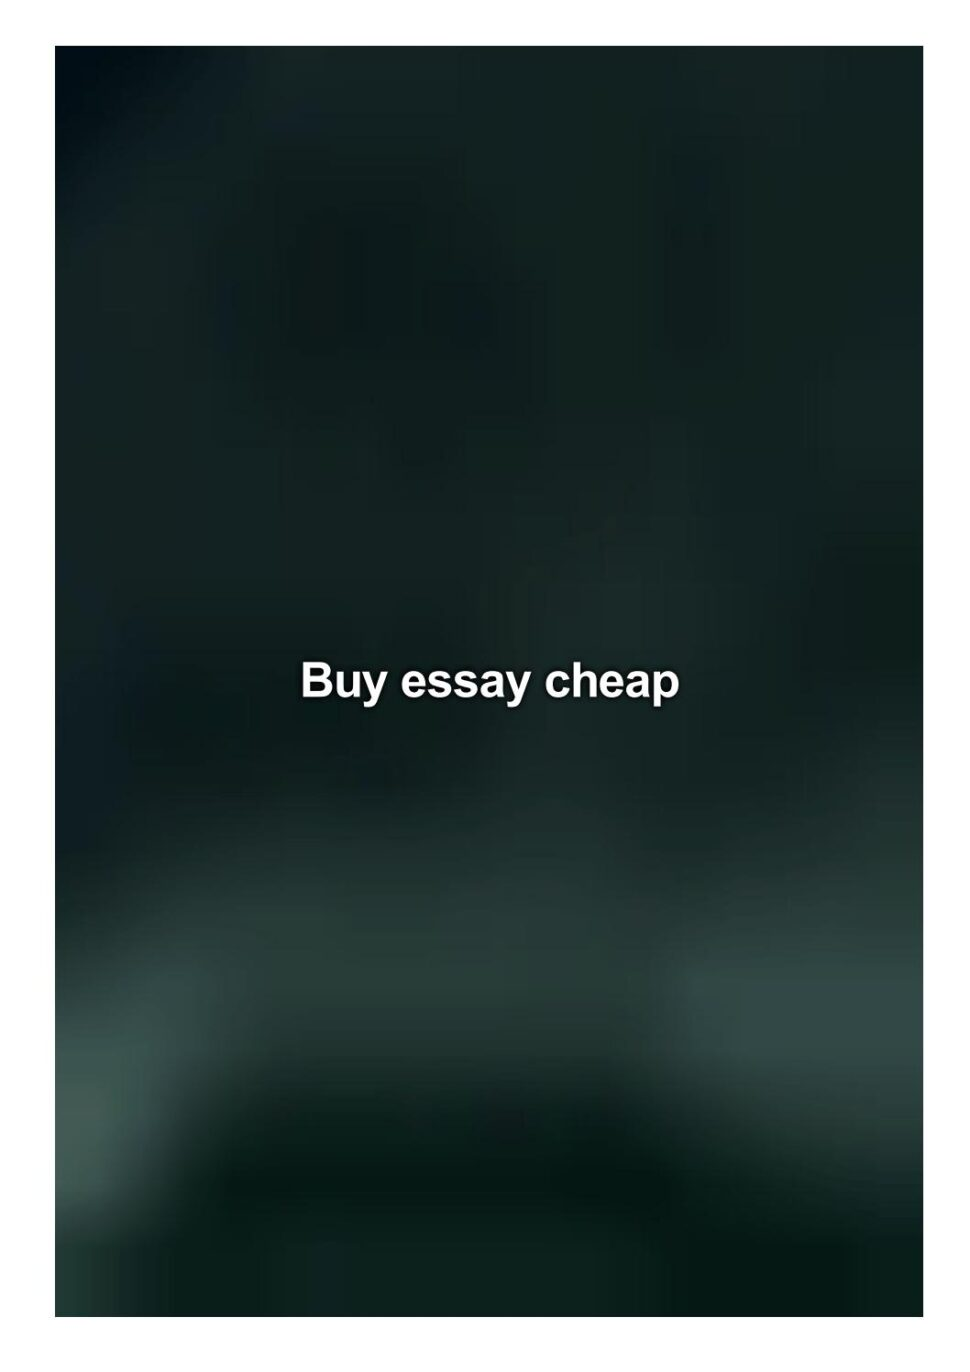 Large Size of Essay By Bolds Angela Issuu Gre Writing Short Narrative Counter Argument Paragraph Buy Cheap